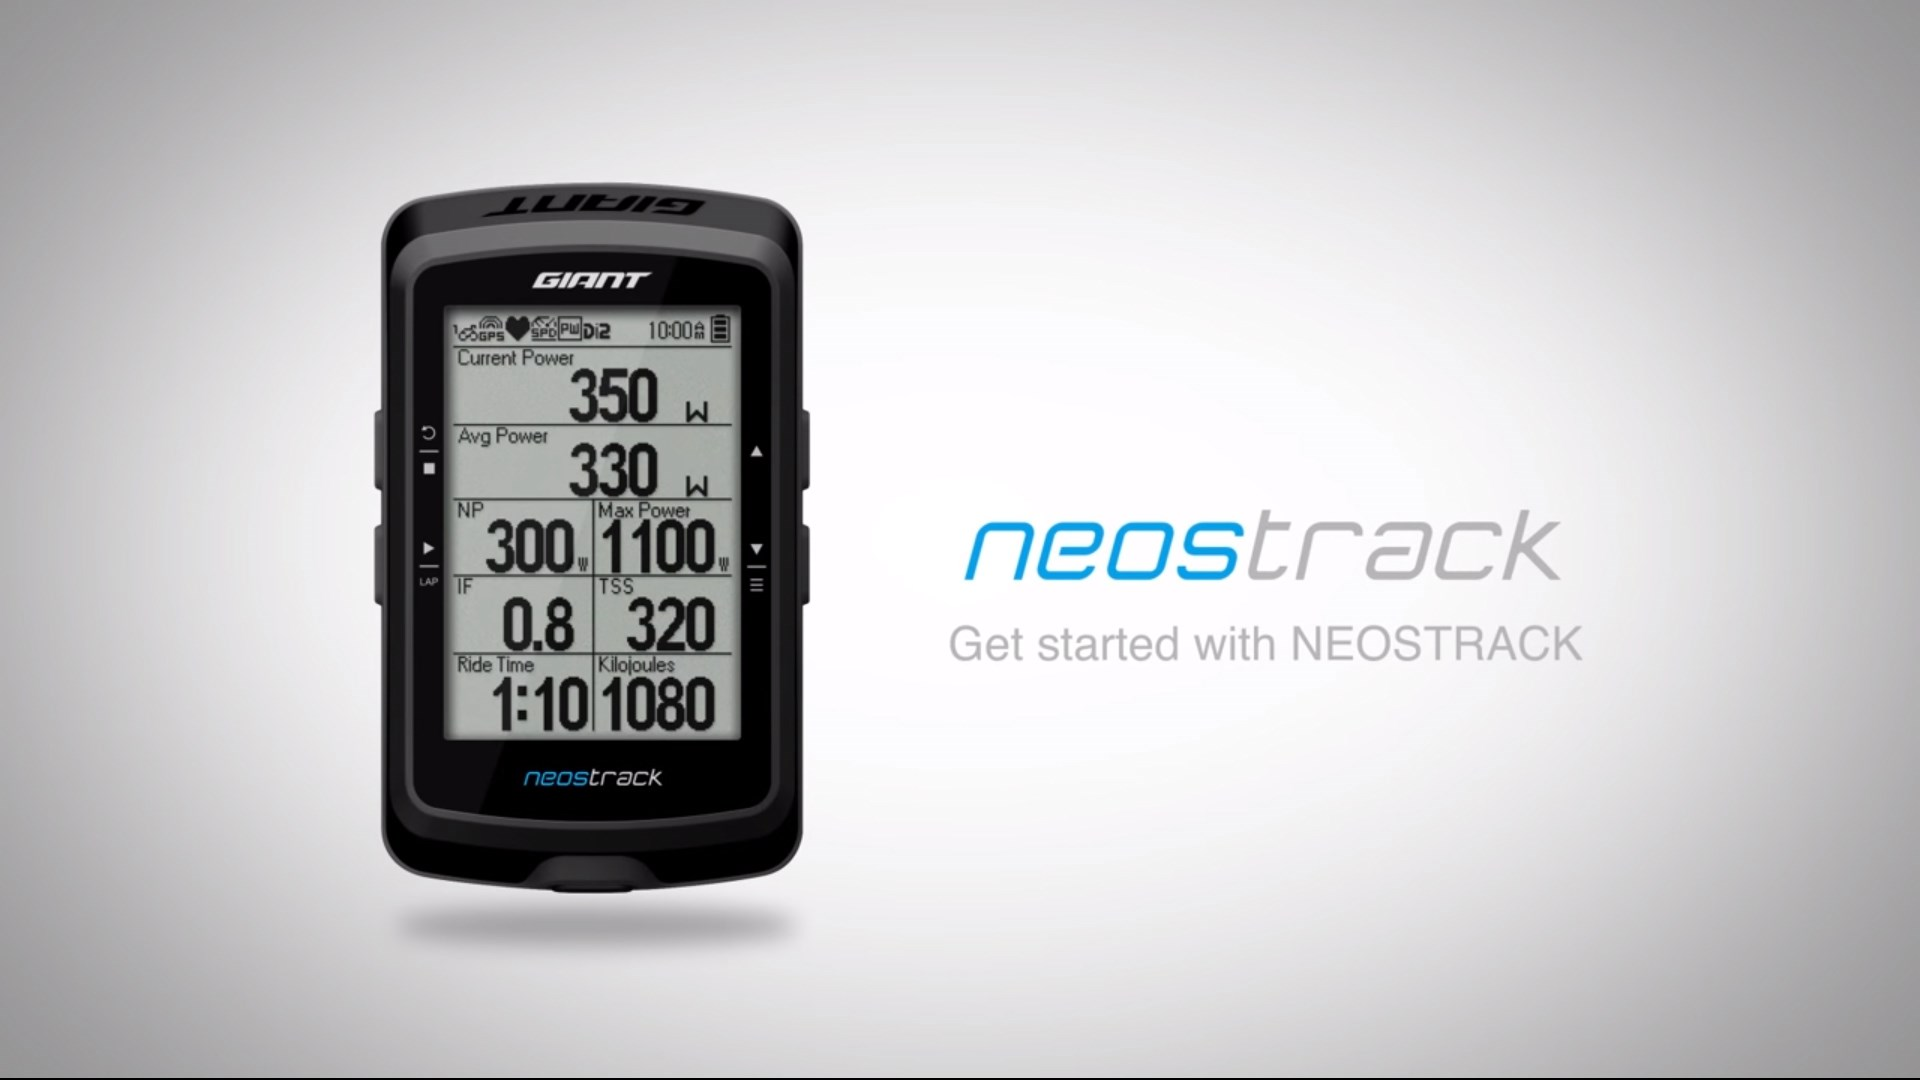 Information is Power: The All-New Giant NeosTrack GPS Computer